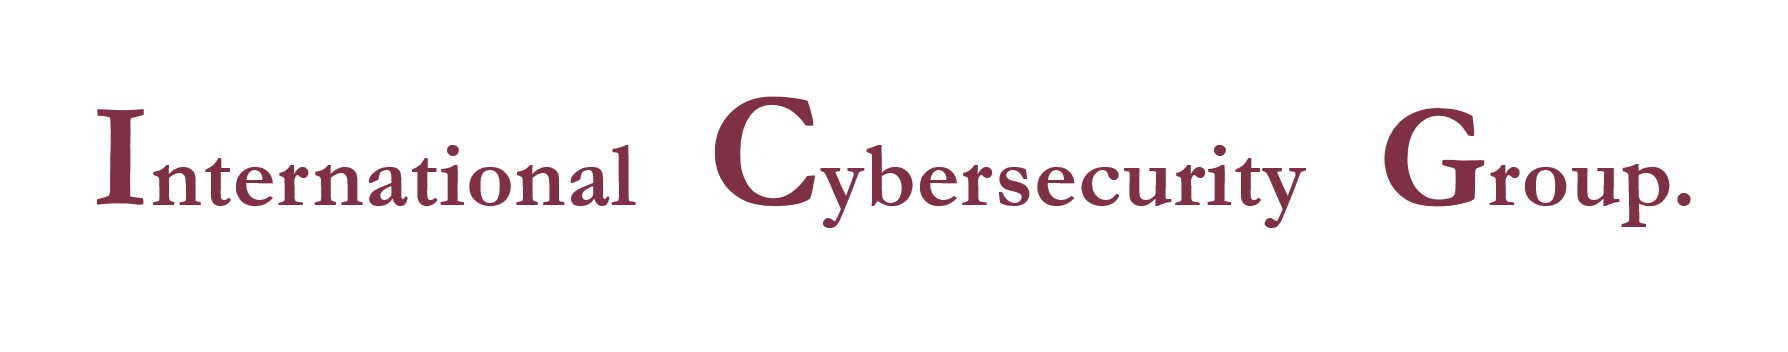 International Cybersecurity Group